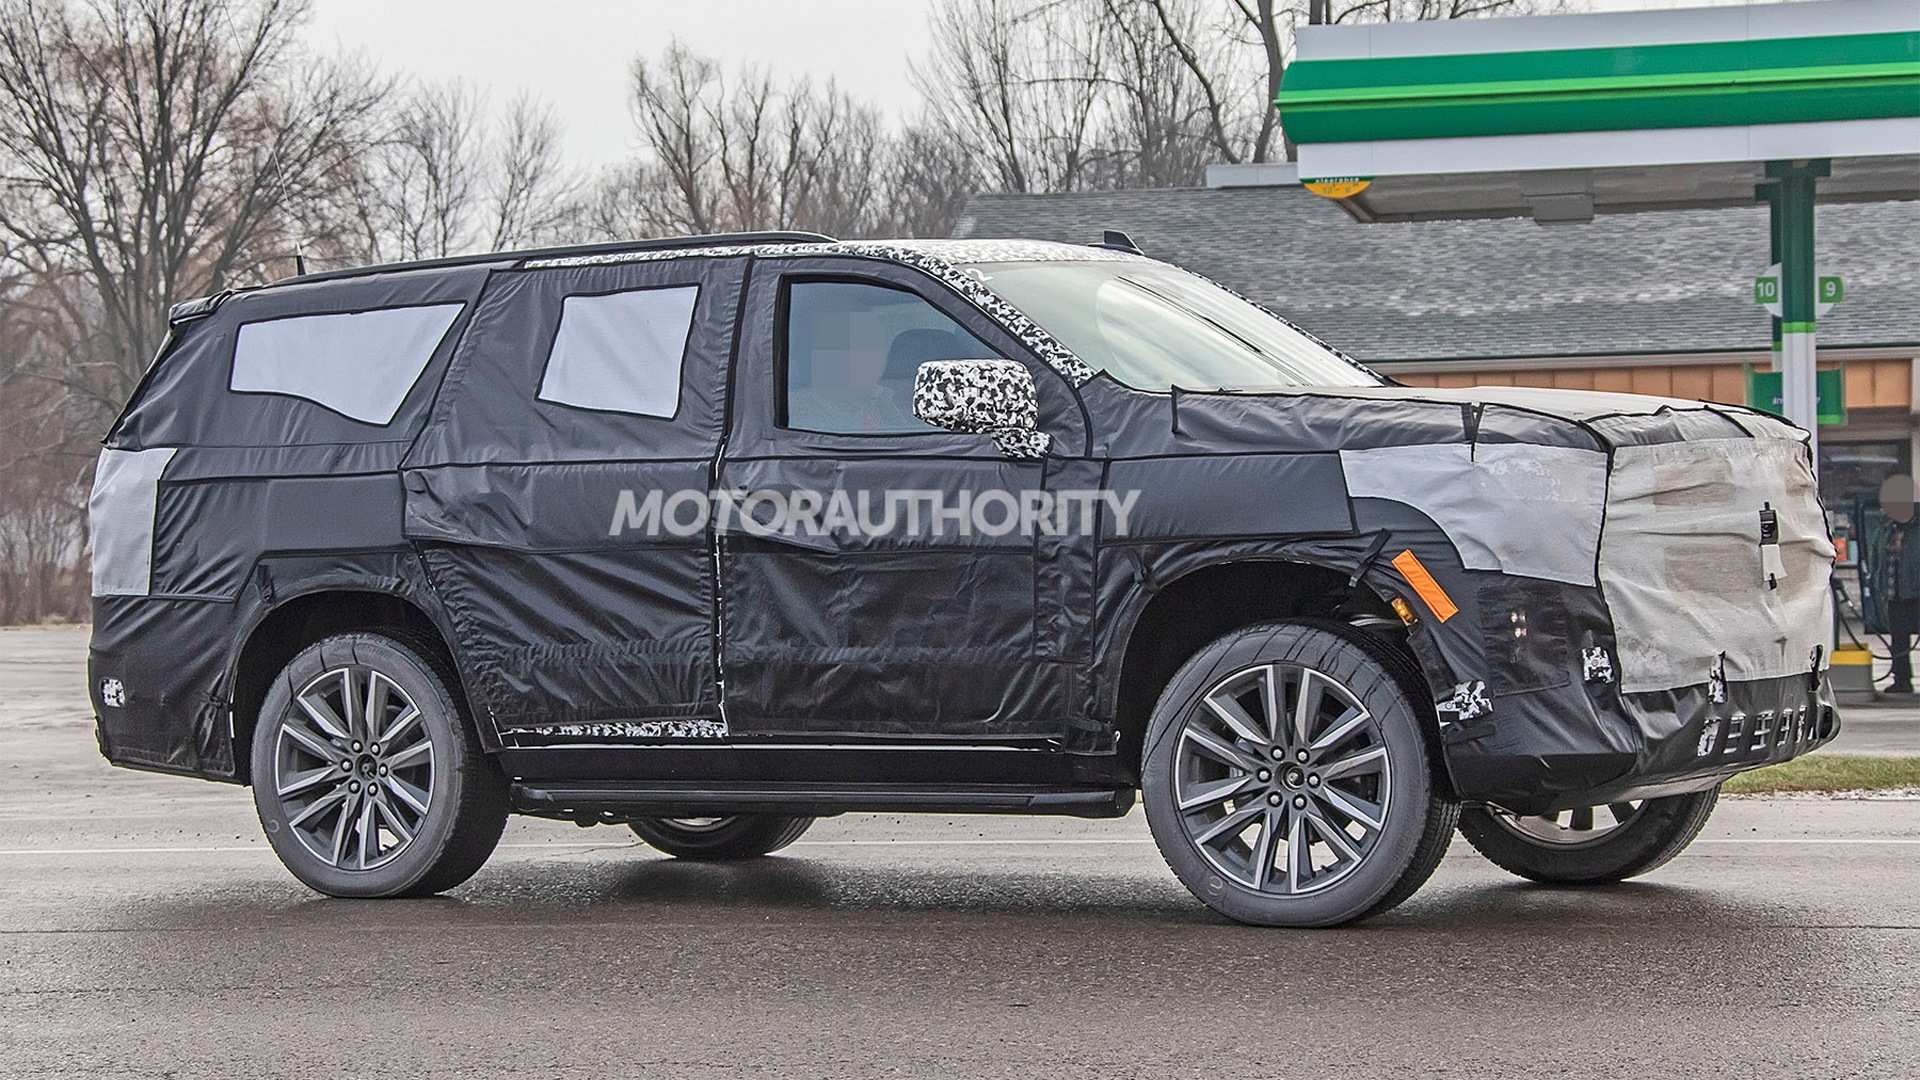 19 Gallery of 2020 Cadillac Escalade Latest News Spy Shoot by 2020 Cadillac Escalade Latest News